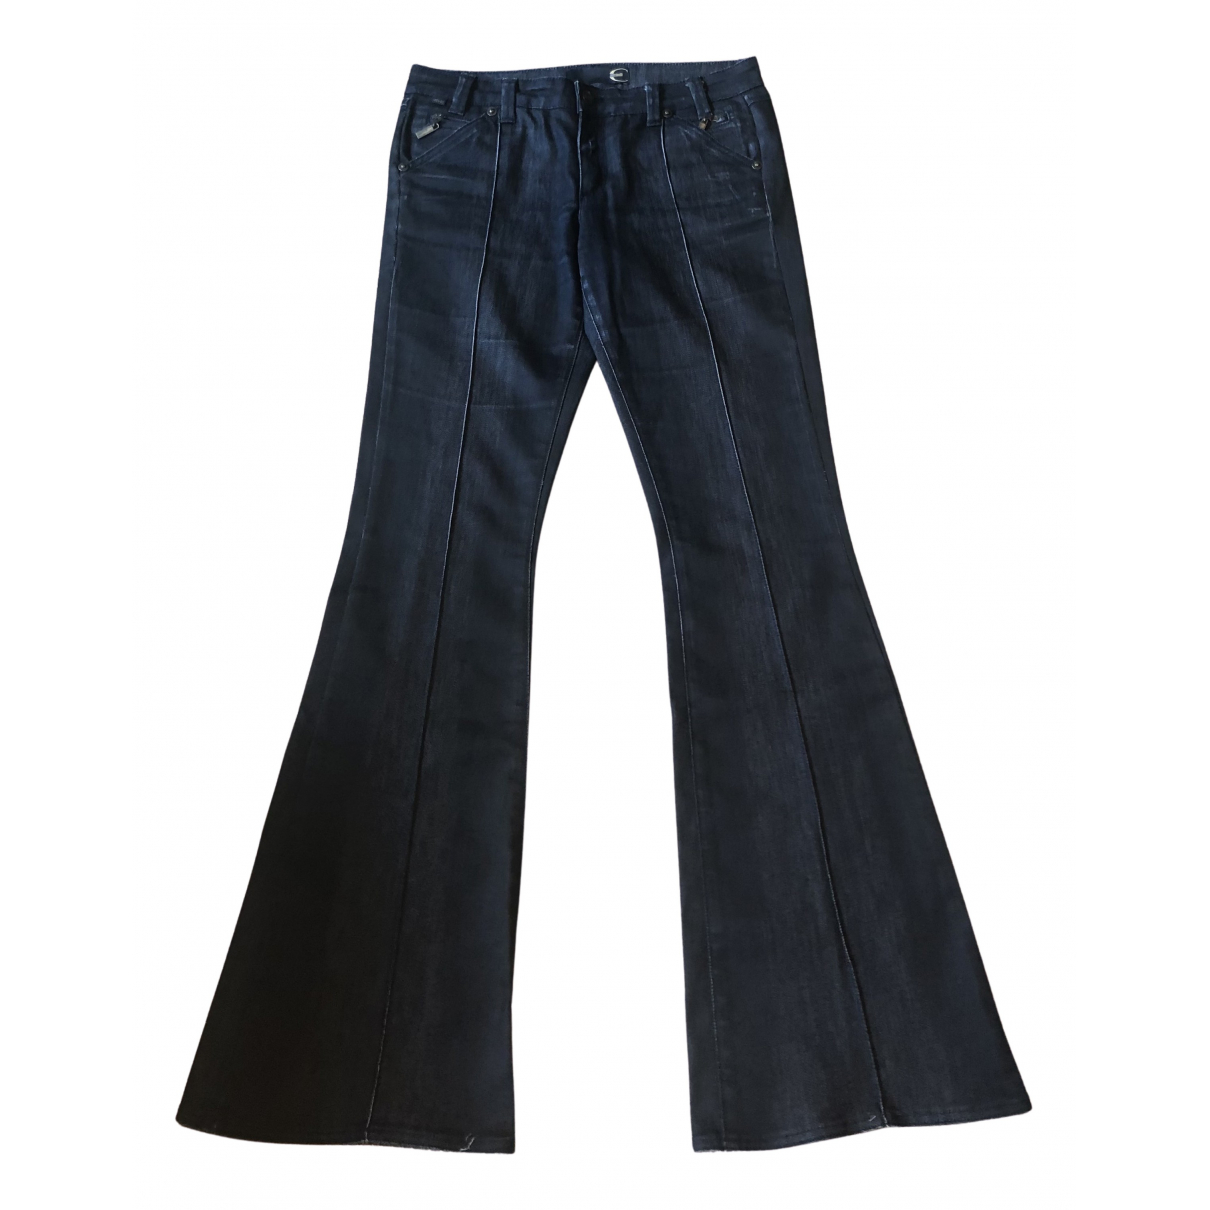 Just Cavalli N Grey Cotton Jeans for Women 38 FR